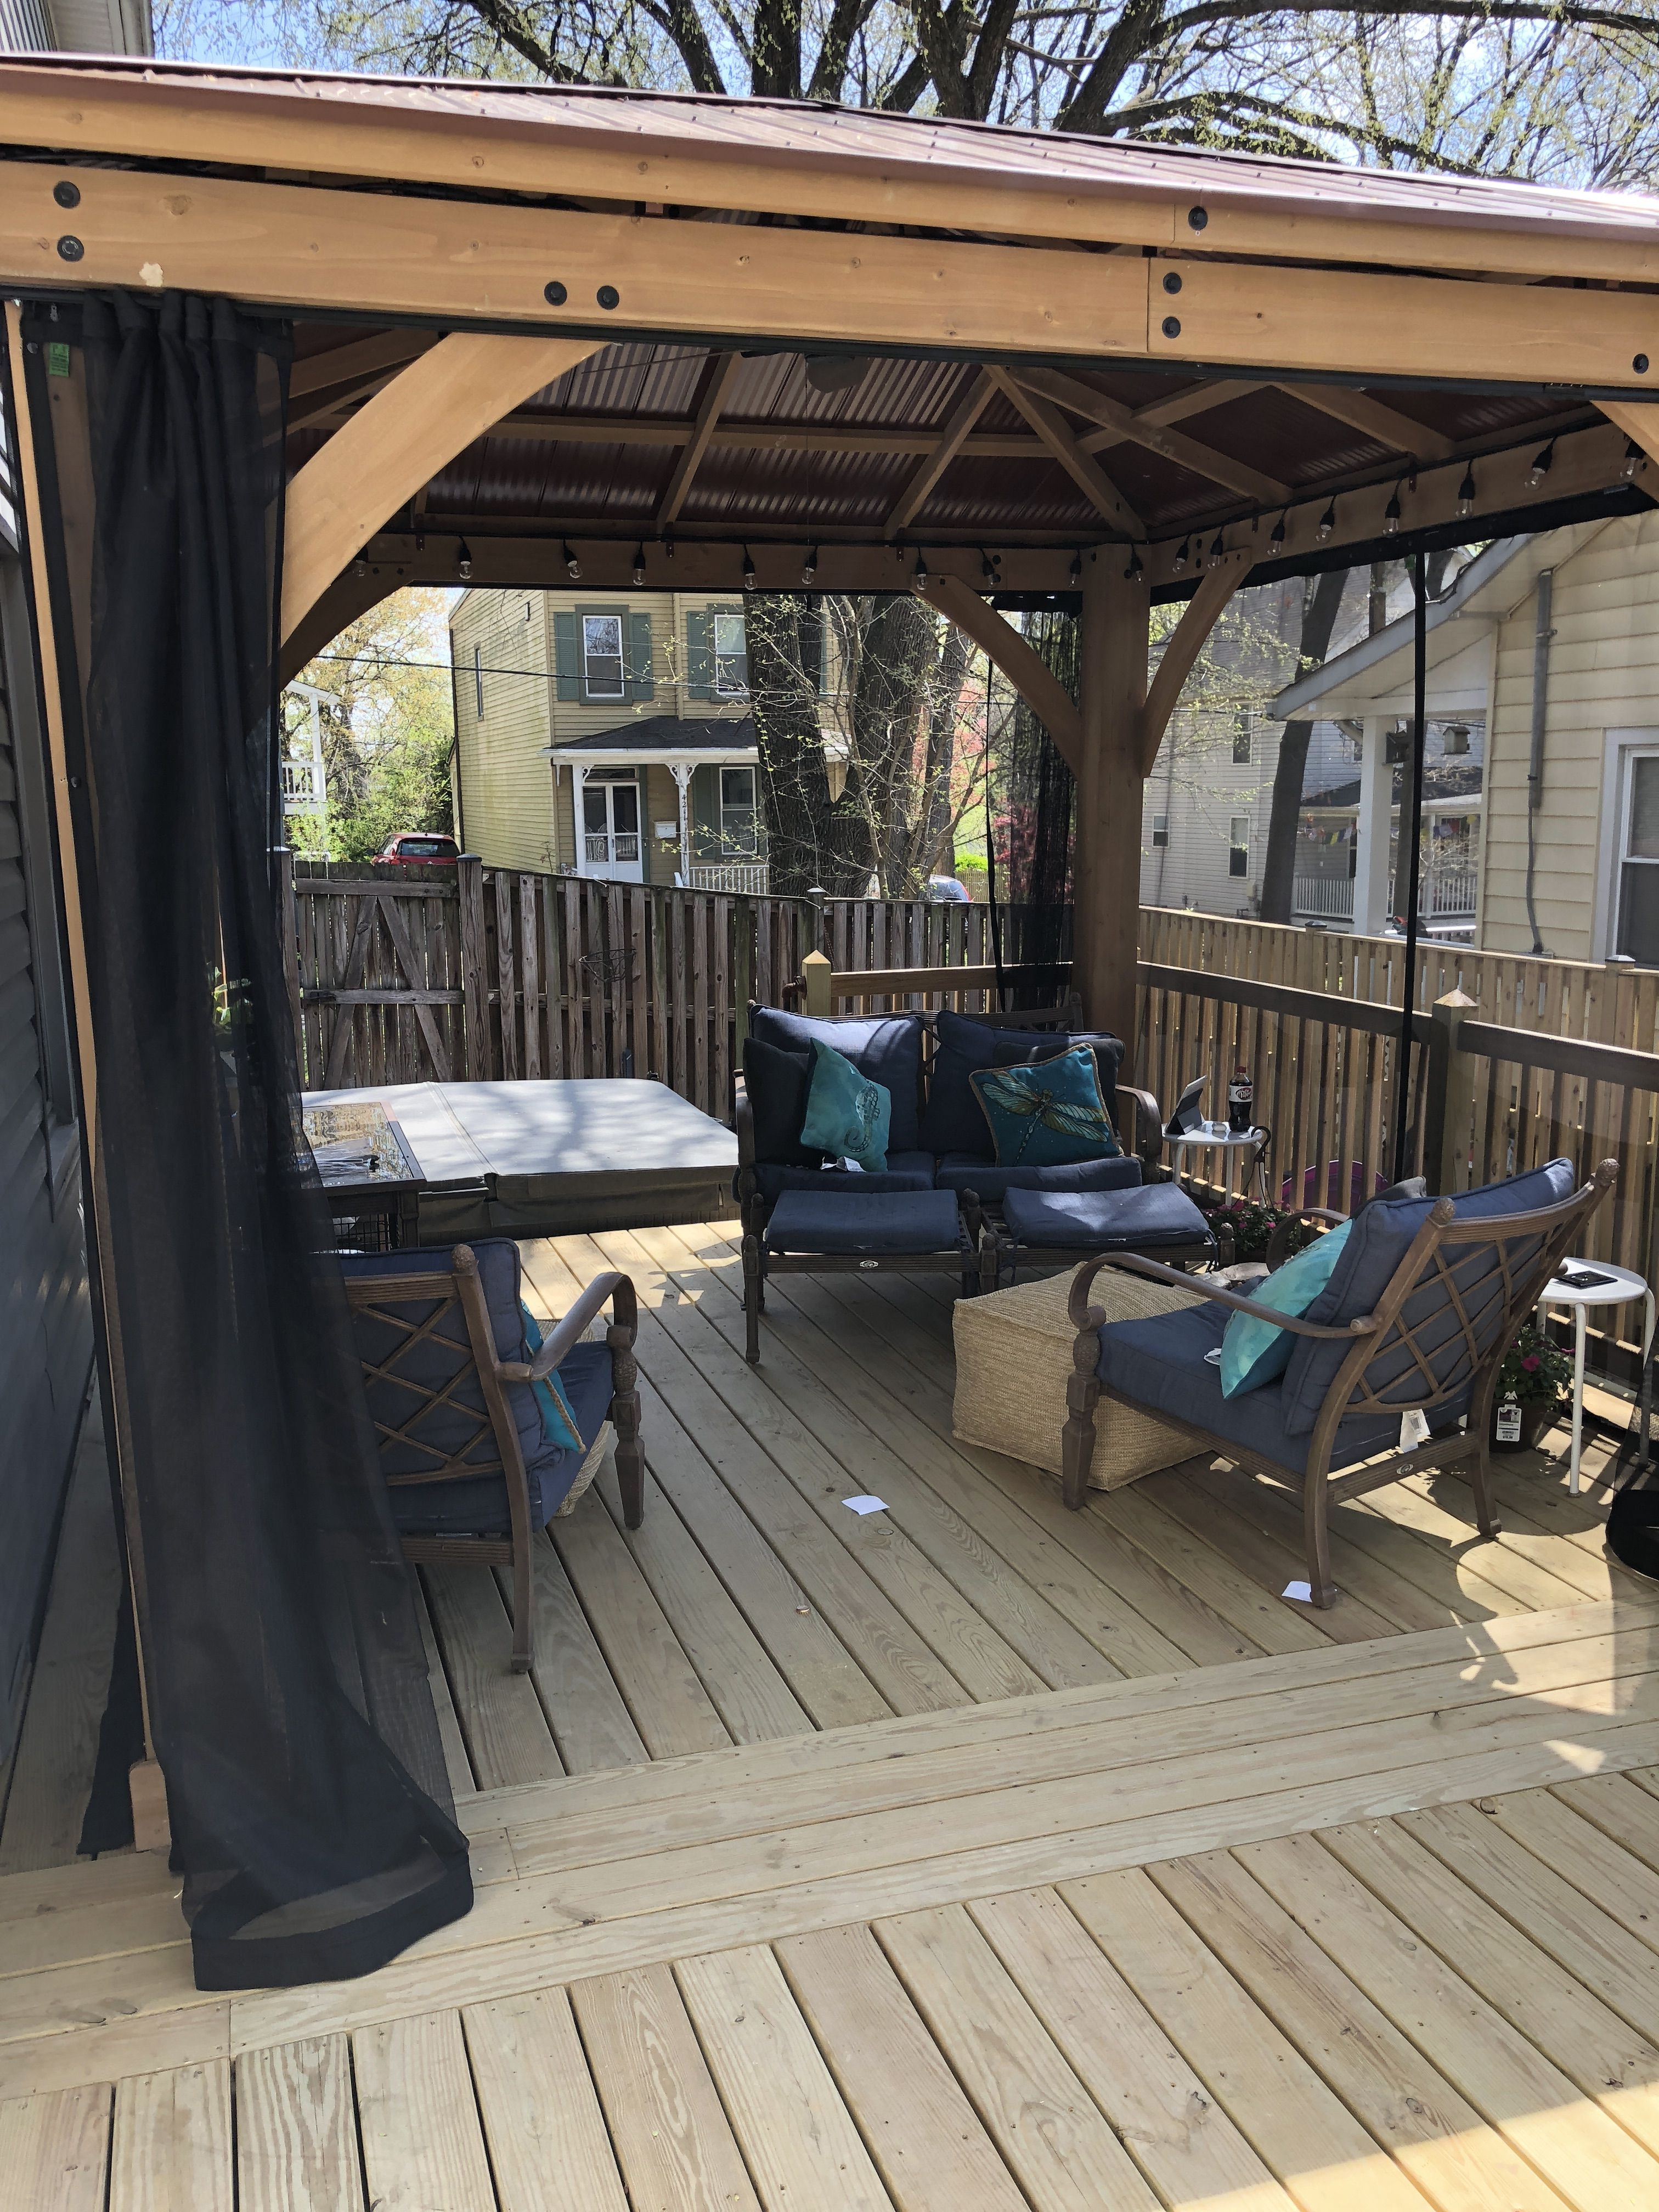 Metal Gazebo Kits Costco Awesome Costco Yardistry Gazebo On Our Deck with Mosquito Curtains